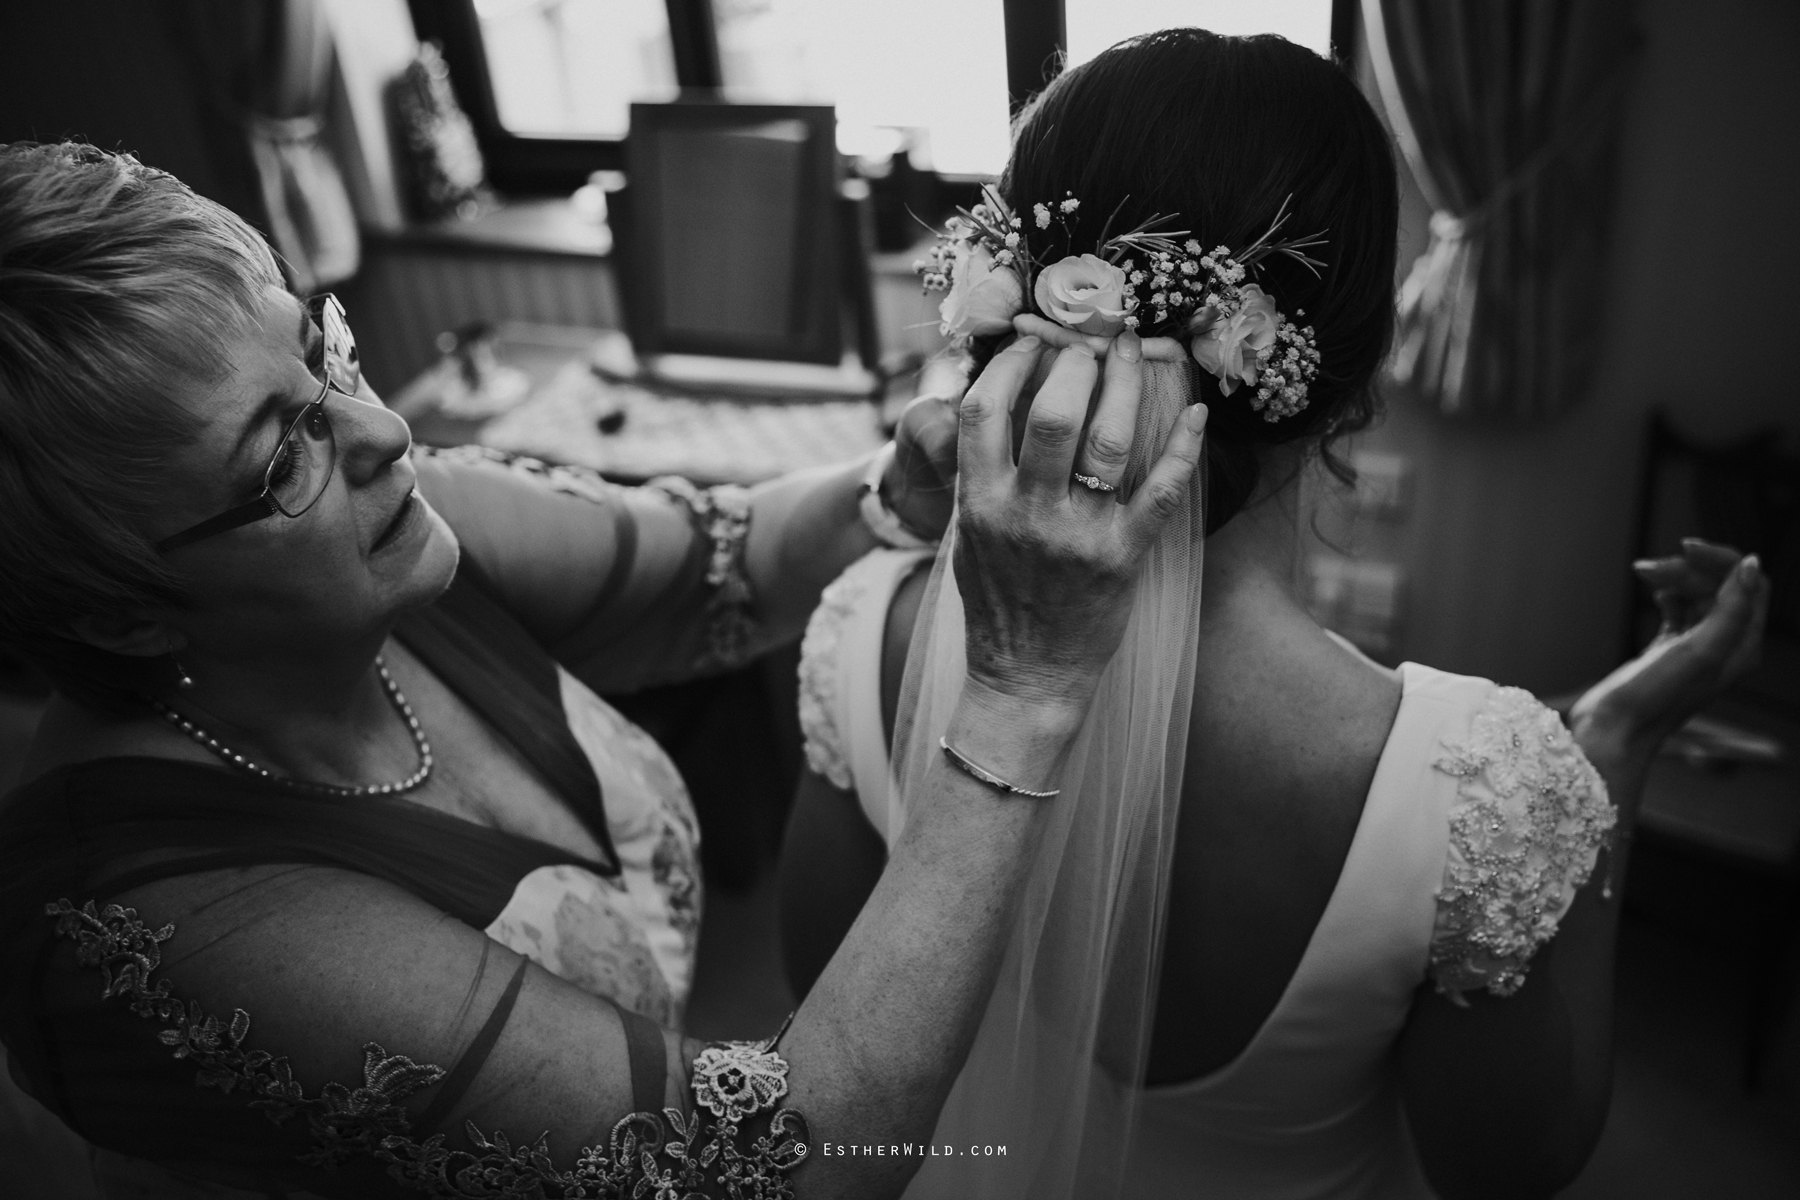 Wootton_Wedding_Copyright_Esther_Wild_Photographer_IMG_0561-2.jpg